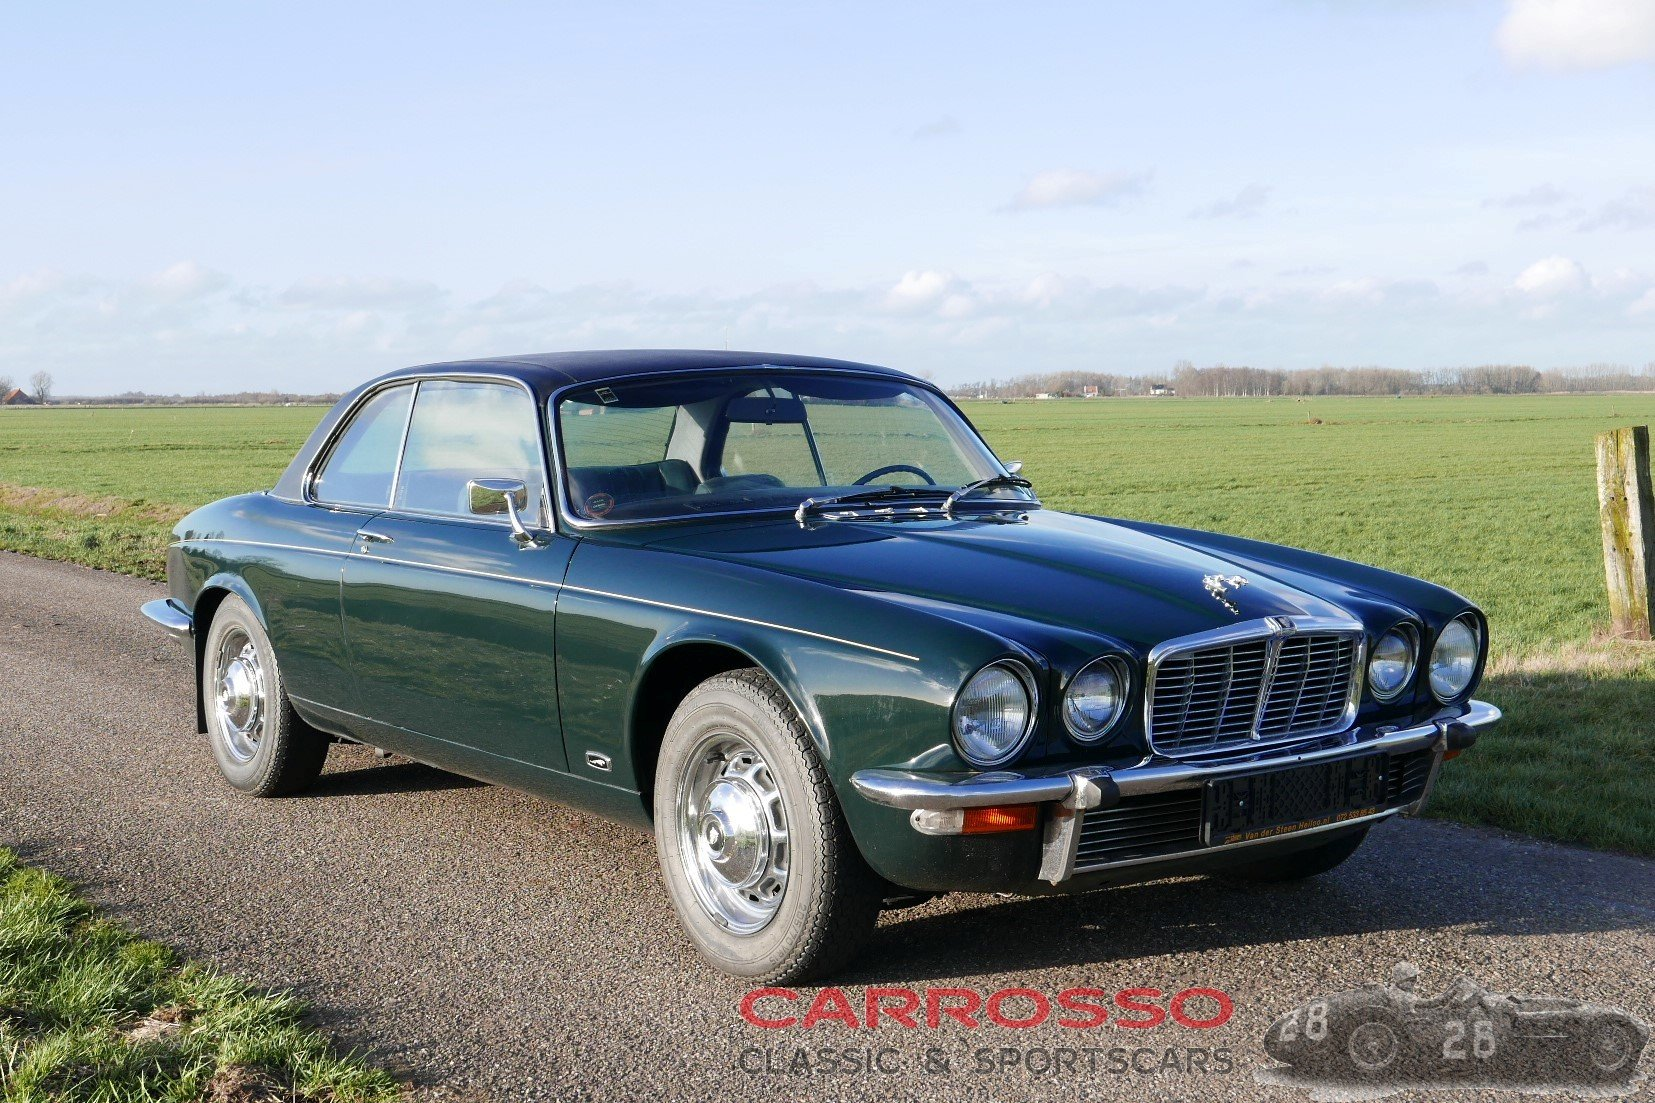 1975 Jaguar XJ6 4.2 C in good condition For Sale   Car And Classic